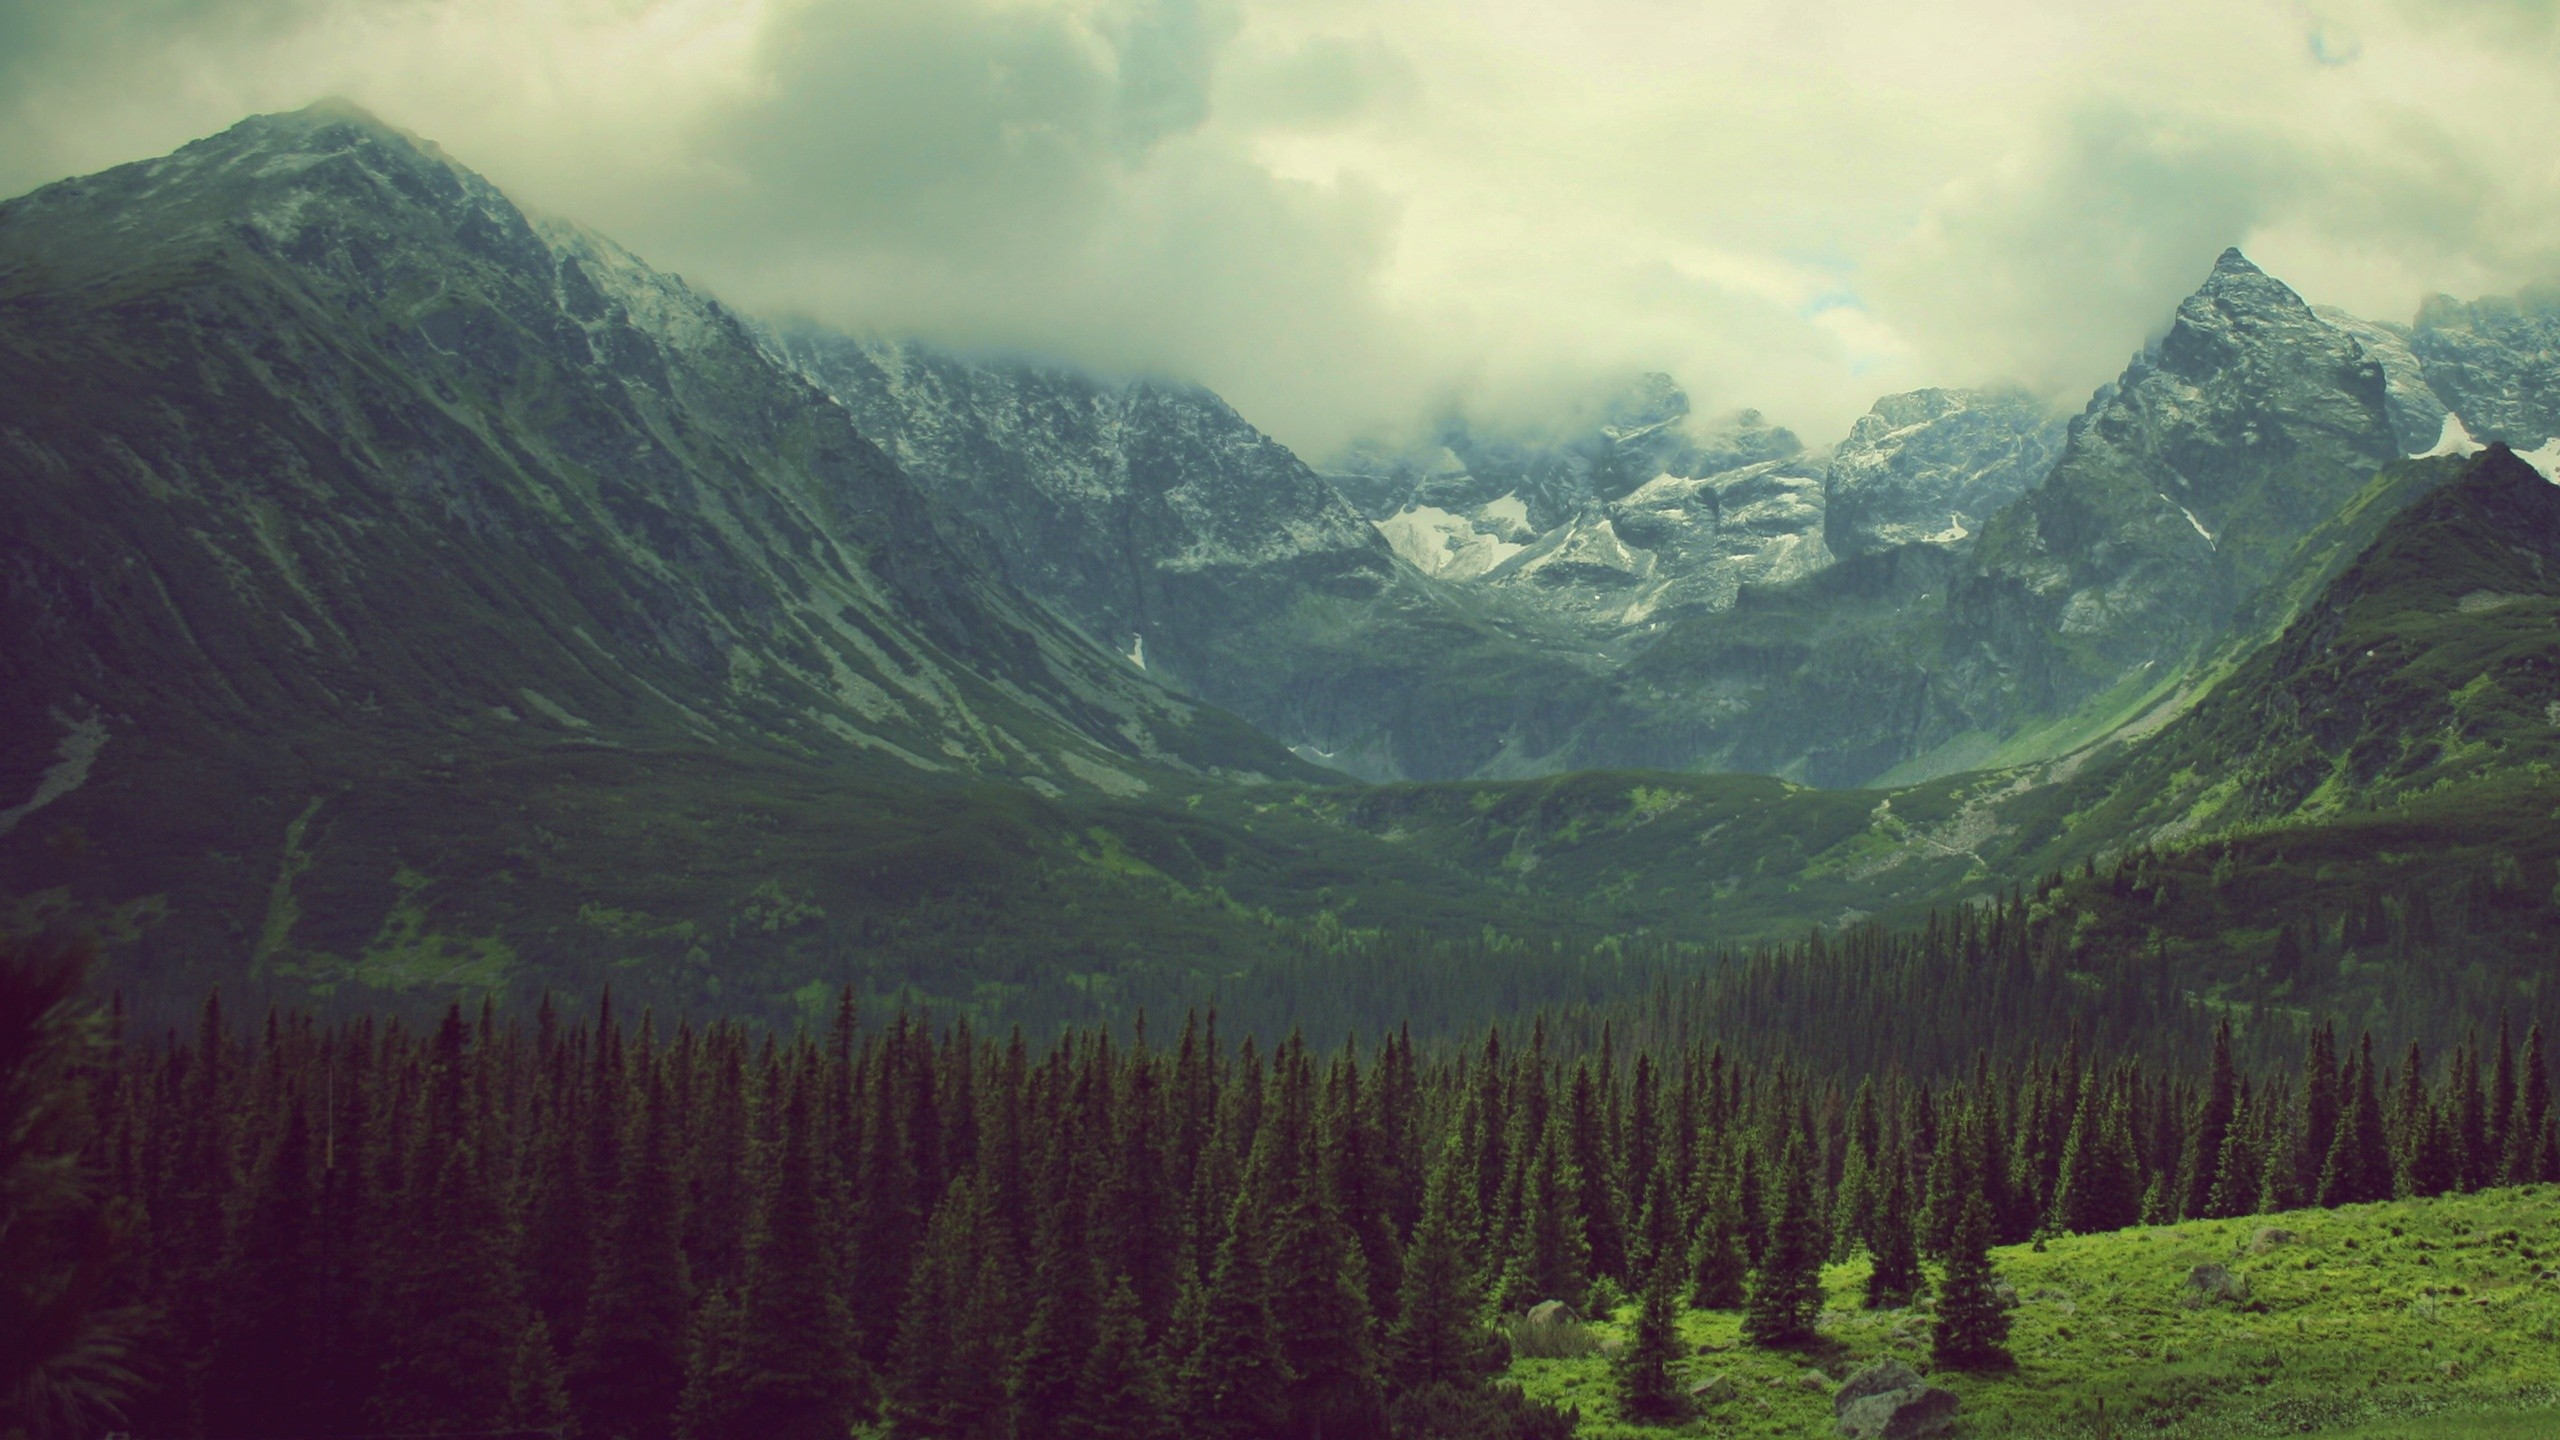 green mountains clouds landscapes nature trees pine trees